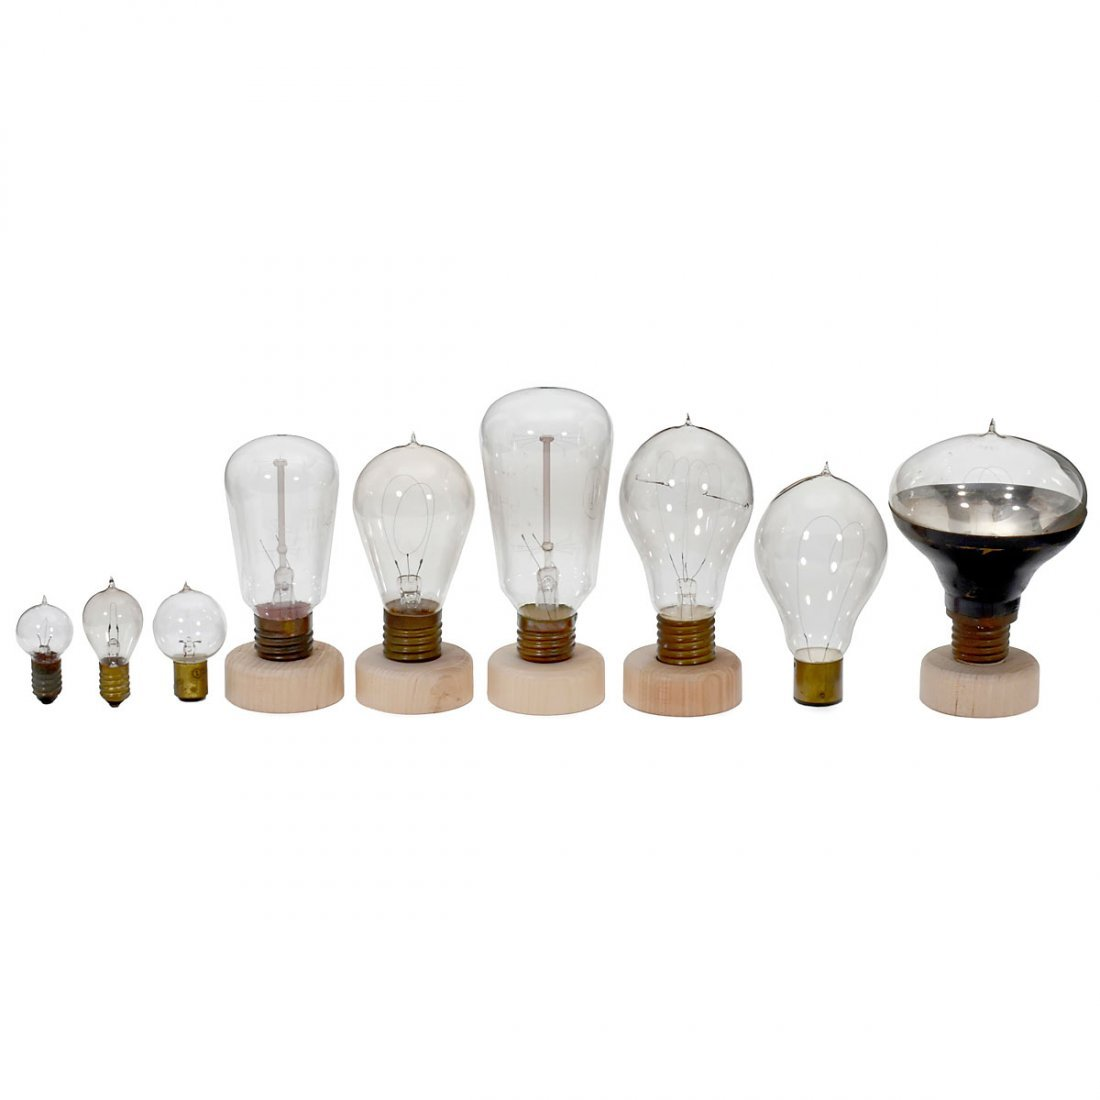 29 Early Carbon Filament Bulbs, 1900 onwards